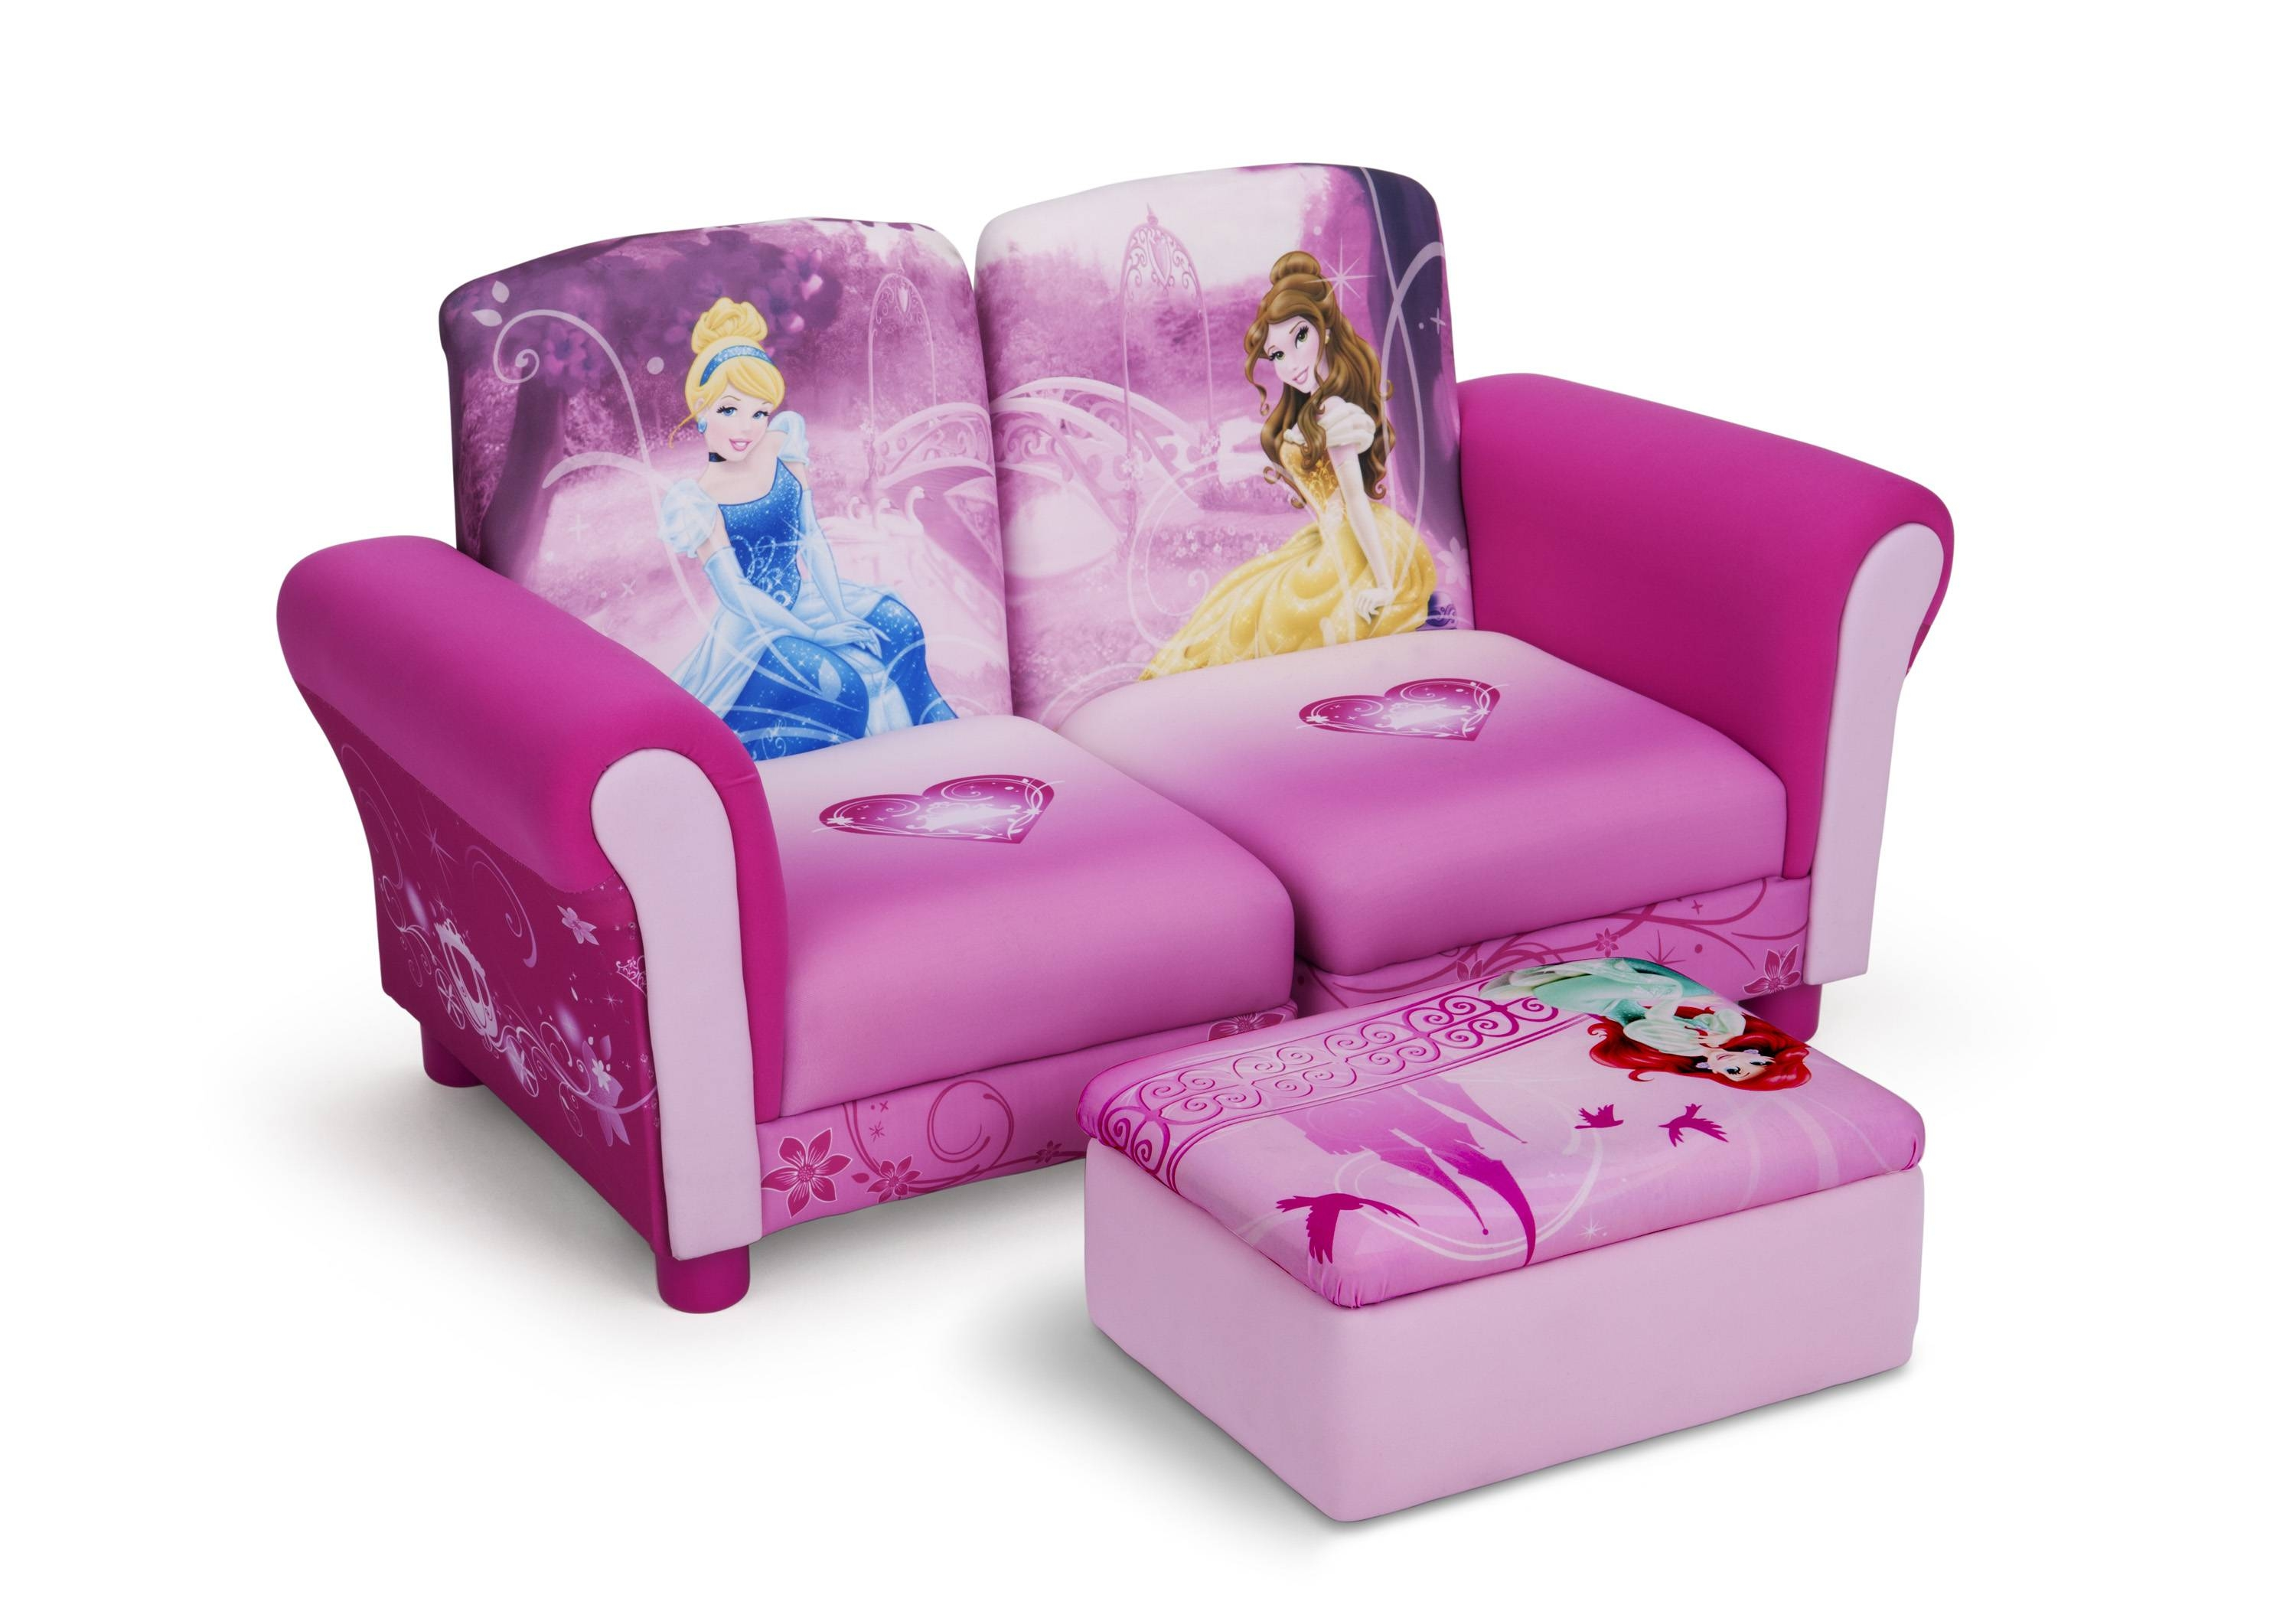 Sofas Center : Sofa Chair For Child Home Designs Childrens With Regard To Childrens Sofa Chairs (Photo 15 of 15)